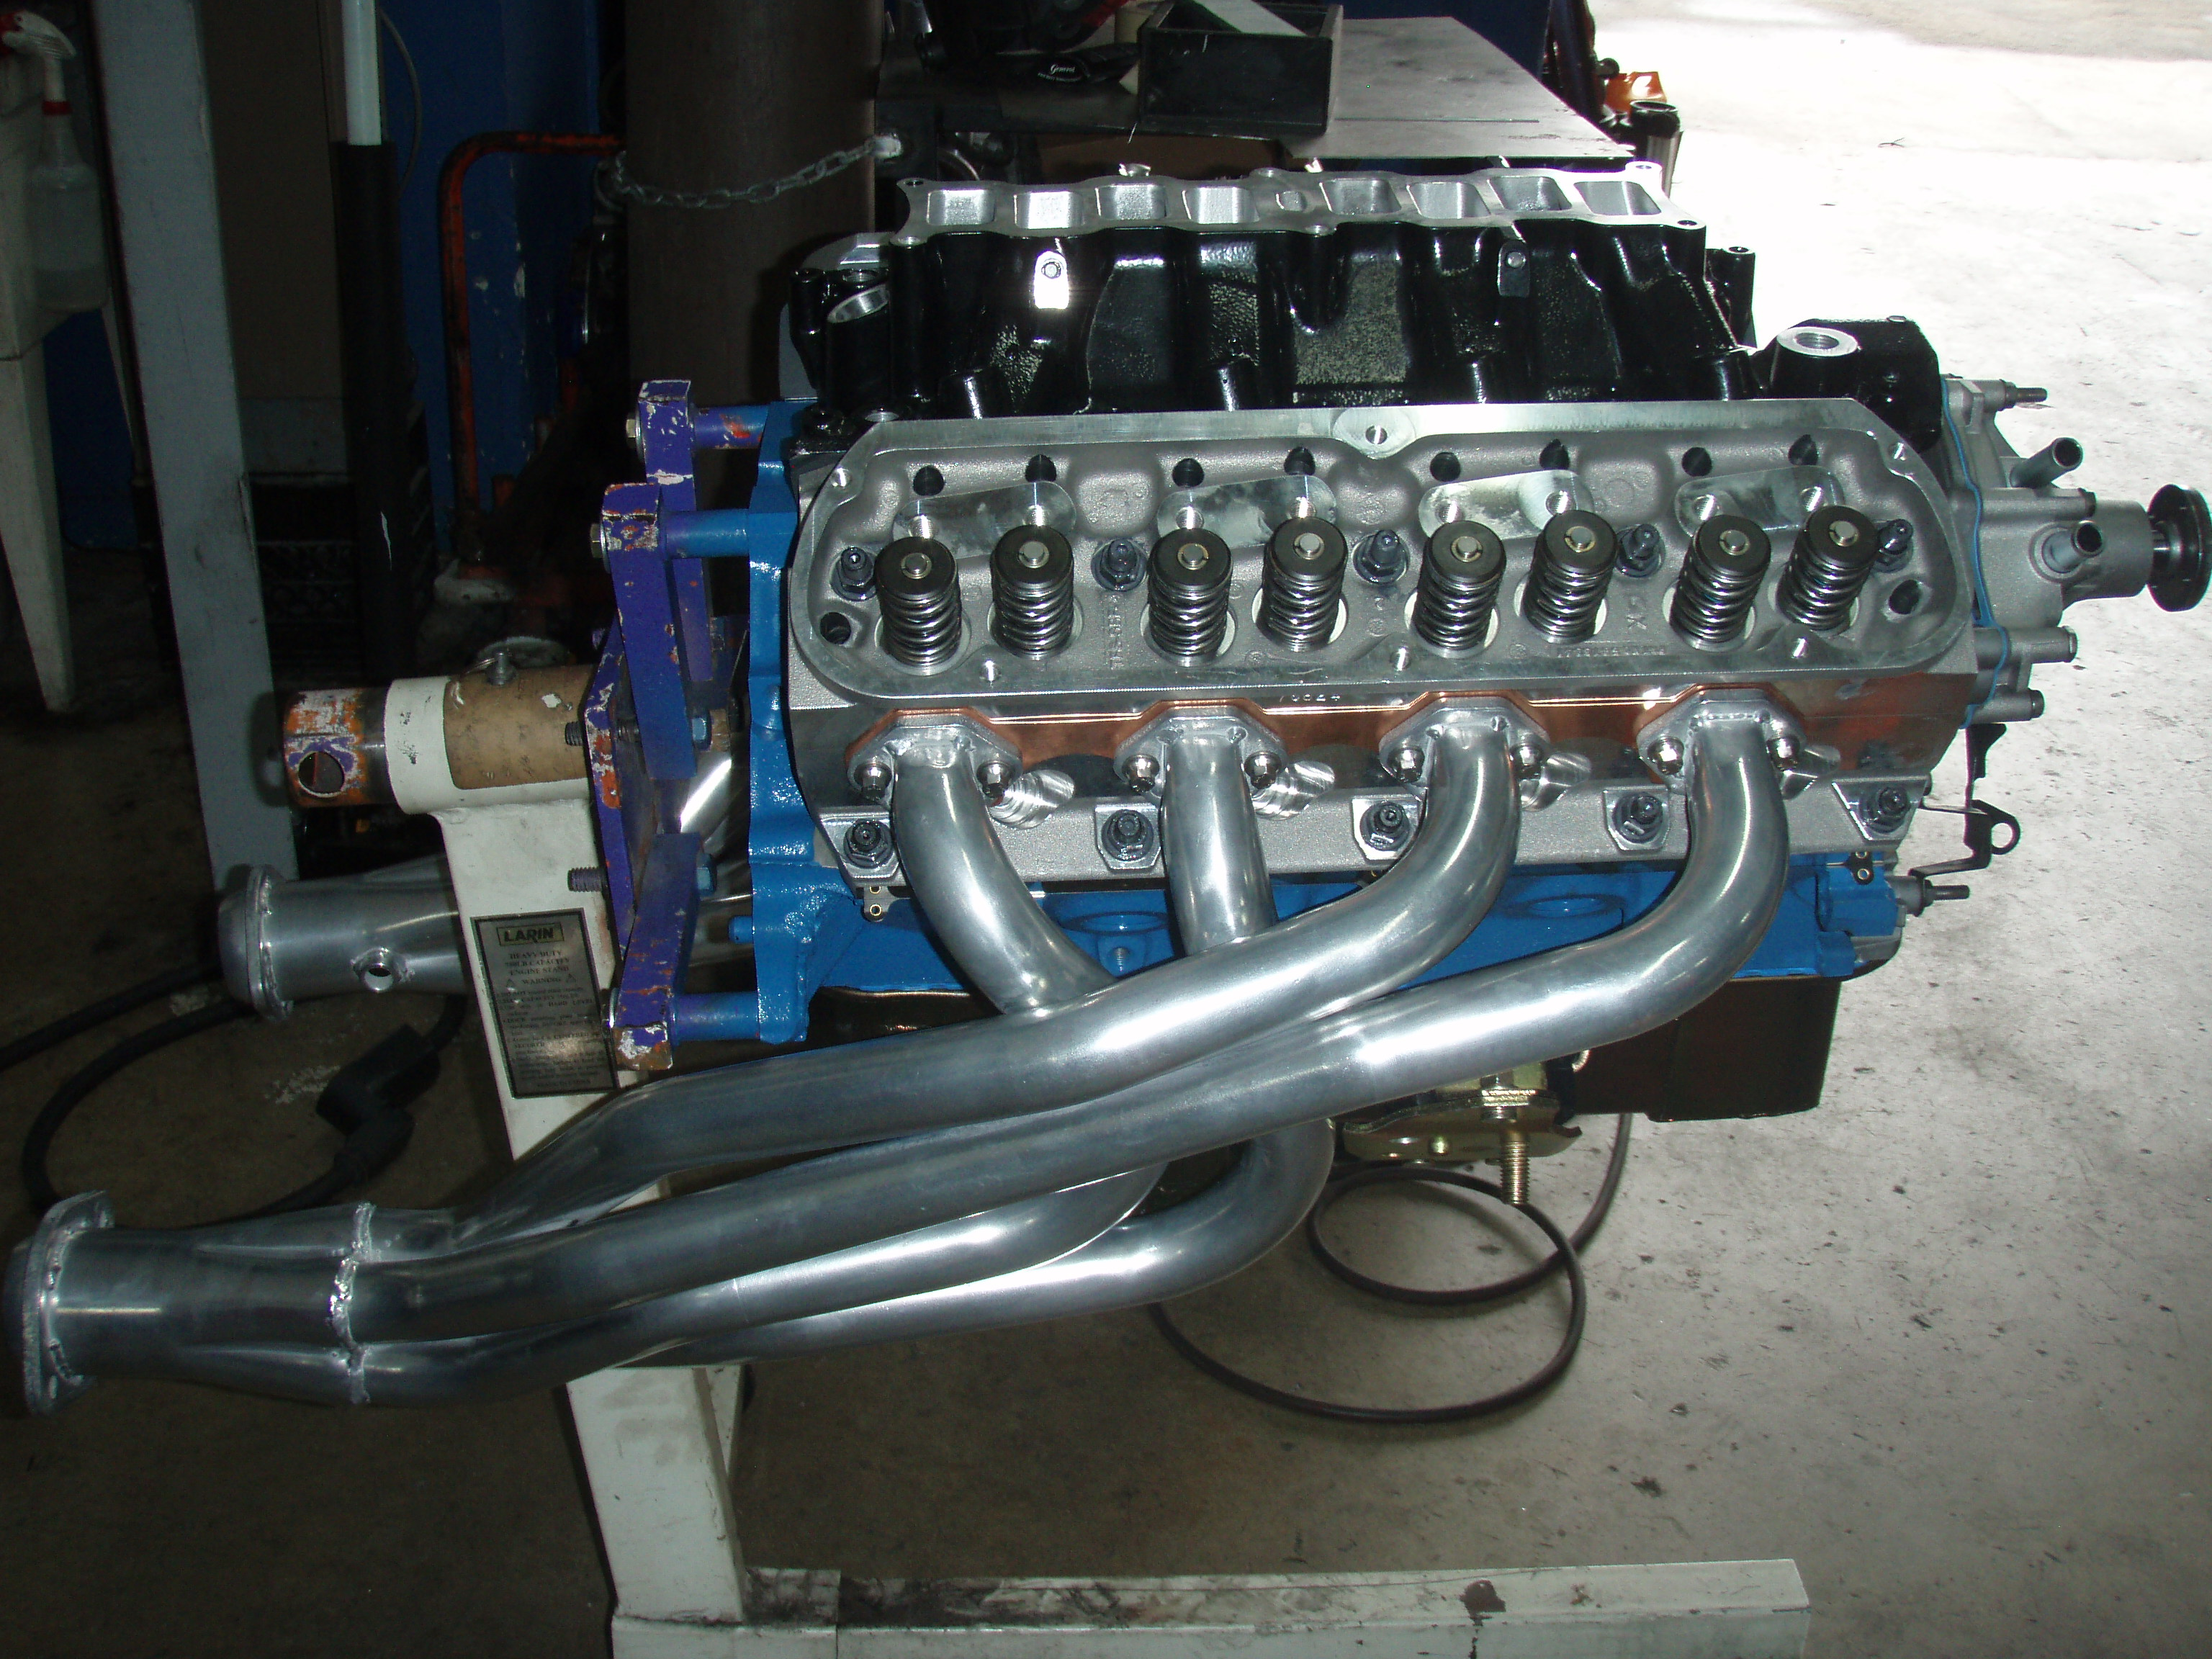 Click image for larger version  Name:Motor1.jpg Views:111 Size:1.45 MB ID:190938